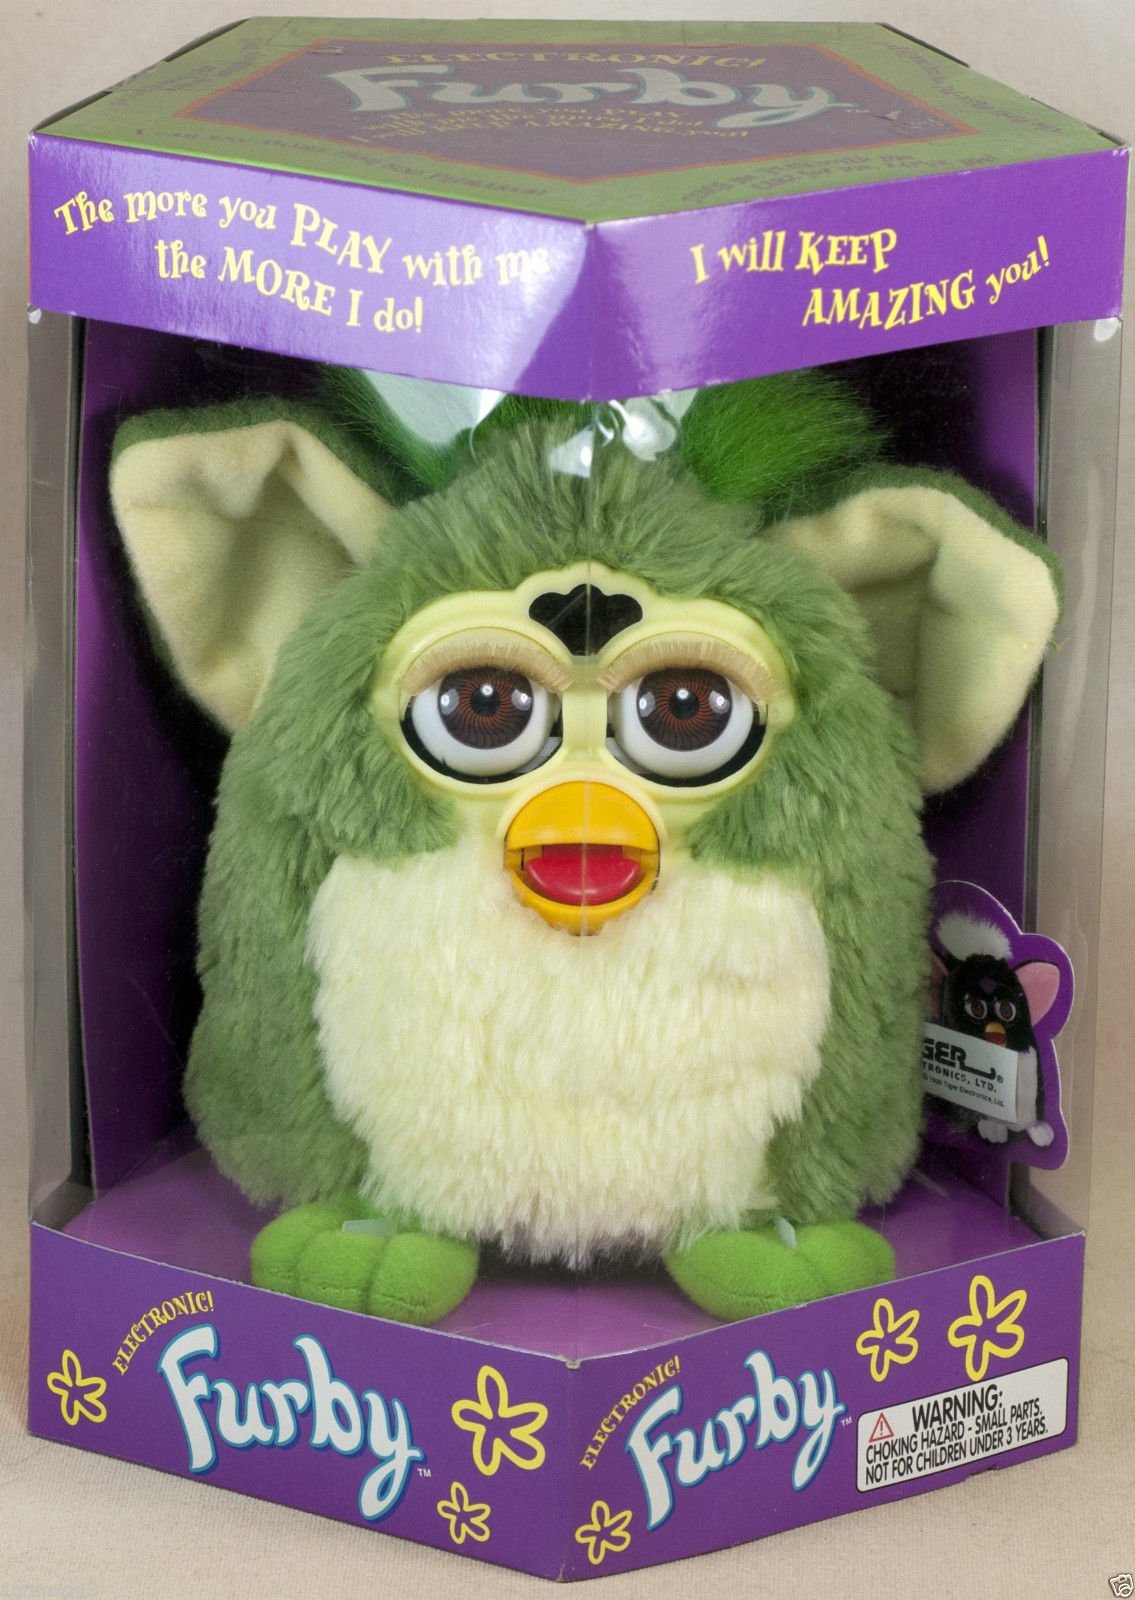 Roblox Furby Green Furby With Green Eyes And Feet In Buy Online In Latvia At Desertcart